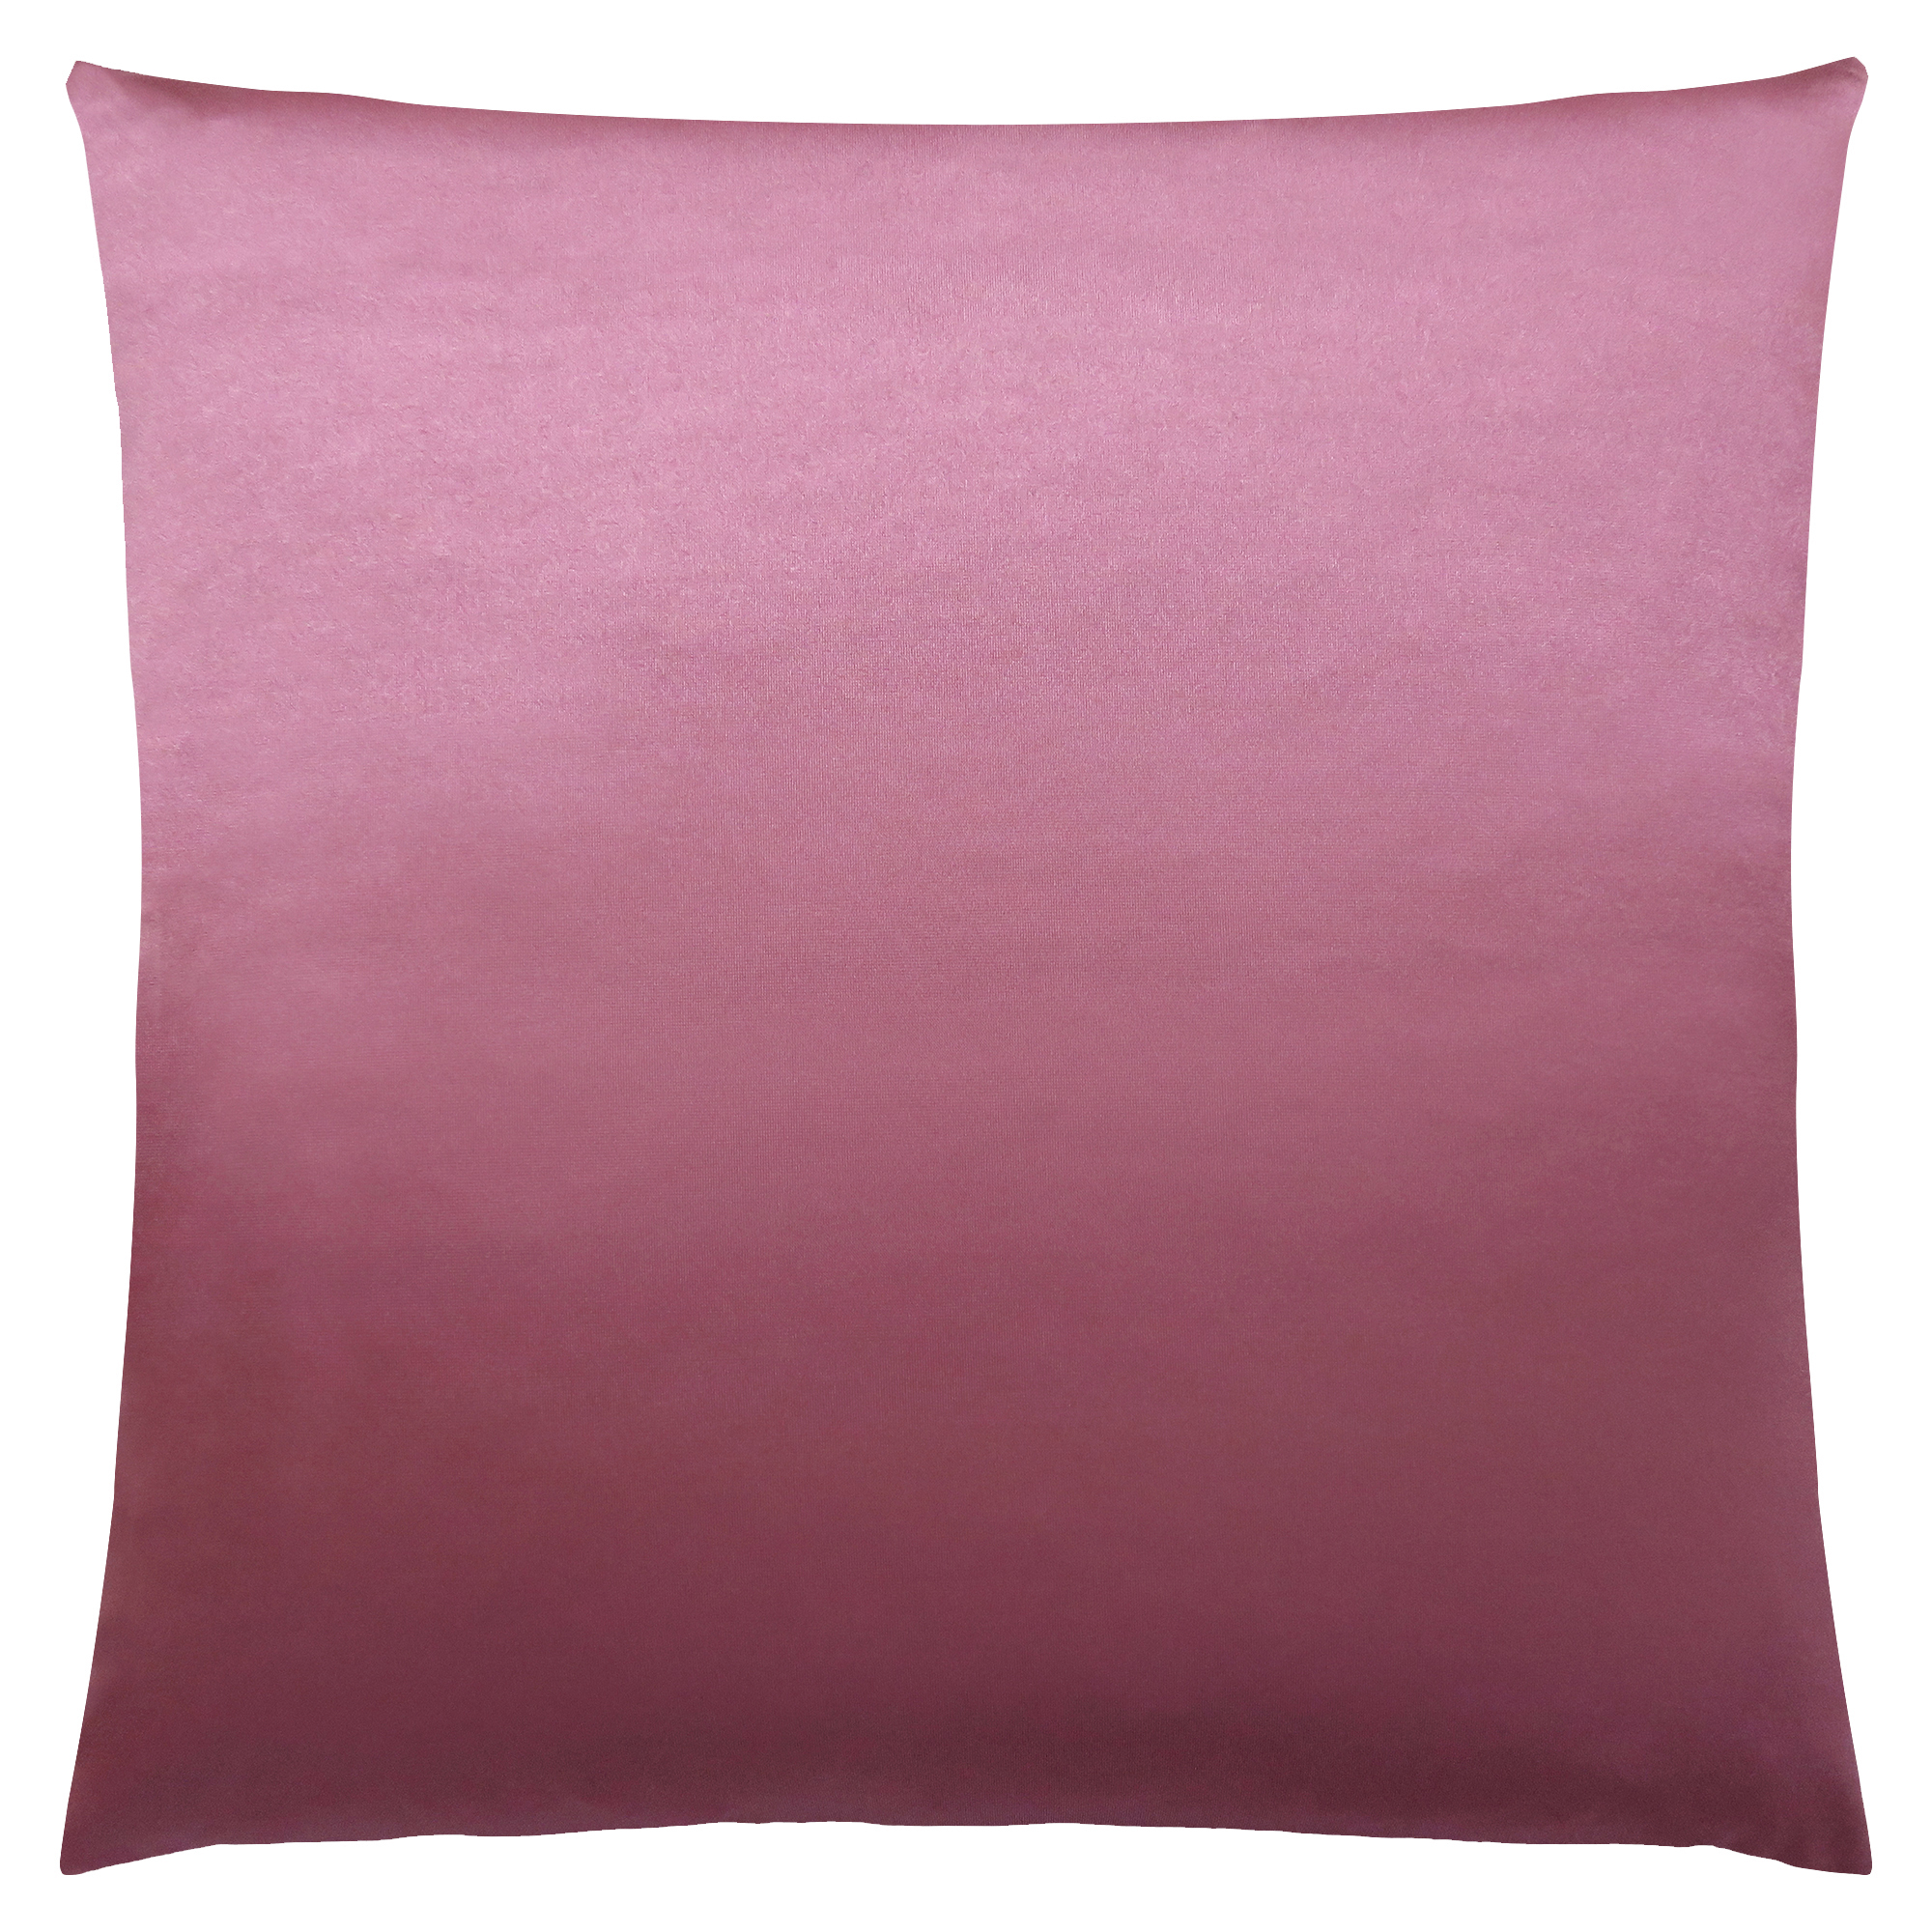 "PILLOW - 18""X 18"" / PINK SATIN / 1PC"